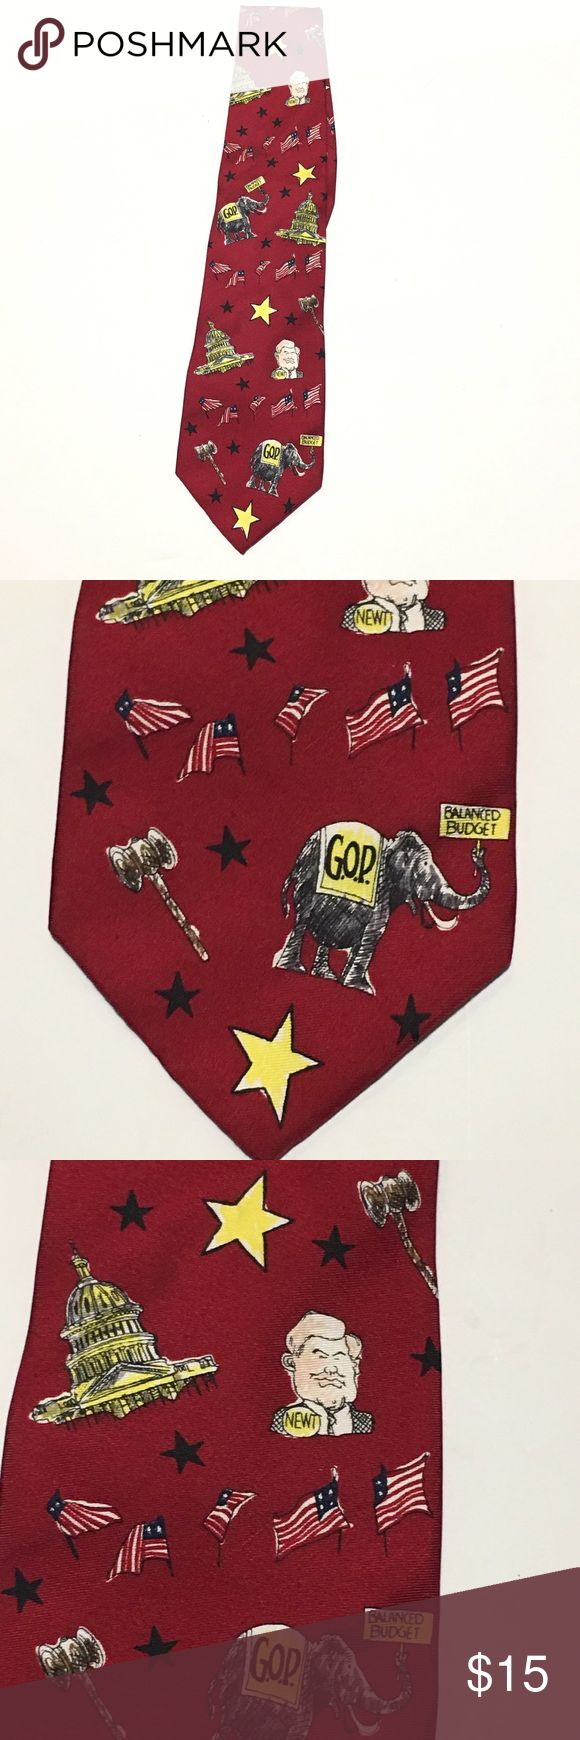 "Newt Gingrich GOP 100% Silk Tie By Mike Luckovich Red 100% silk tie designed by Mike Luckovich 1996. Features miscellaneous GOP motifs to include images of Newt Gingrich, elephant, gavel, flag, stars and the capital building. Made in the USA. Overall length 57"" (photo shown folded in half), front width 4"", back width - 1 3/8"". Mike Luckovich Accessories Ties"